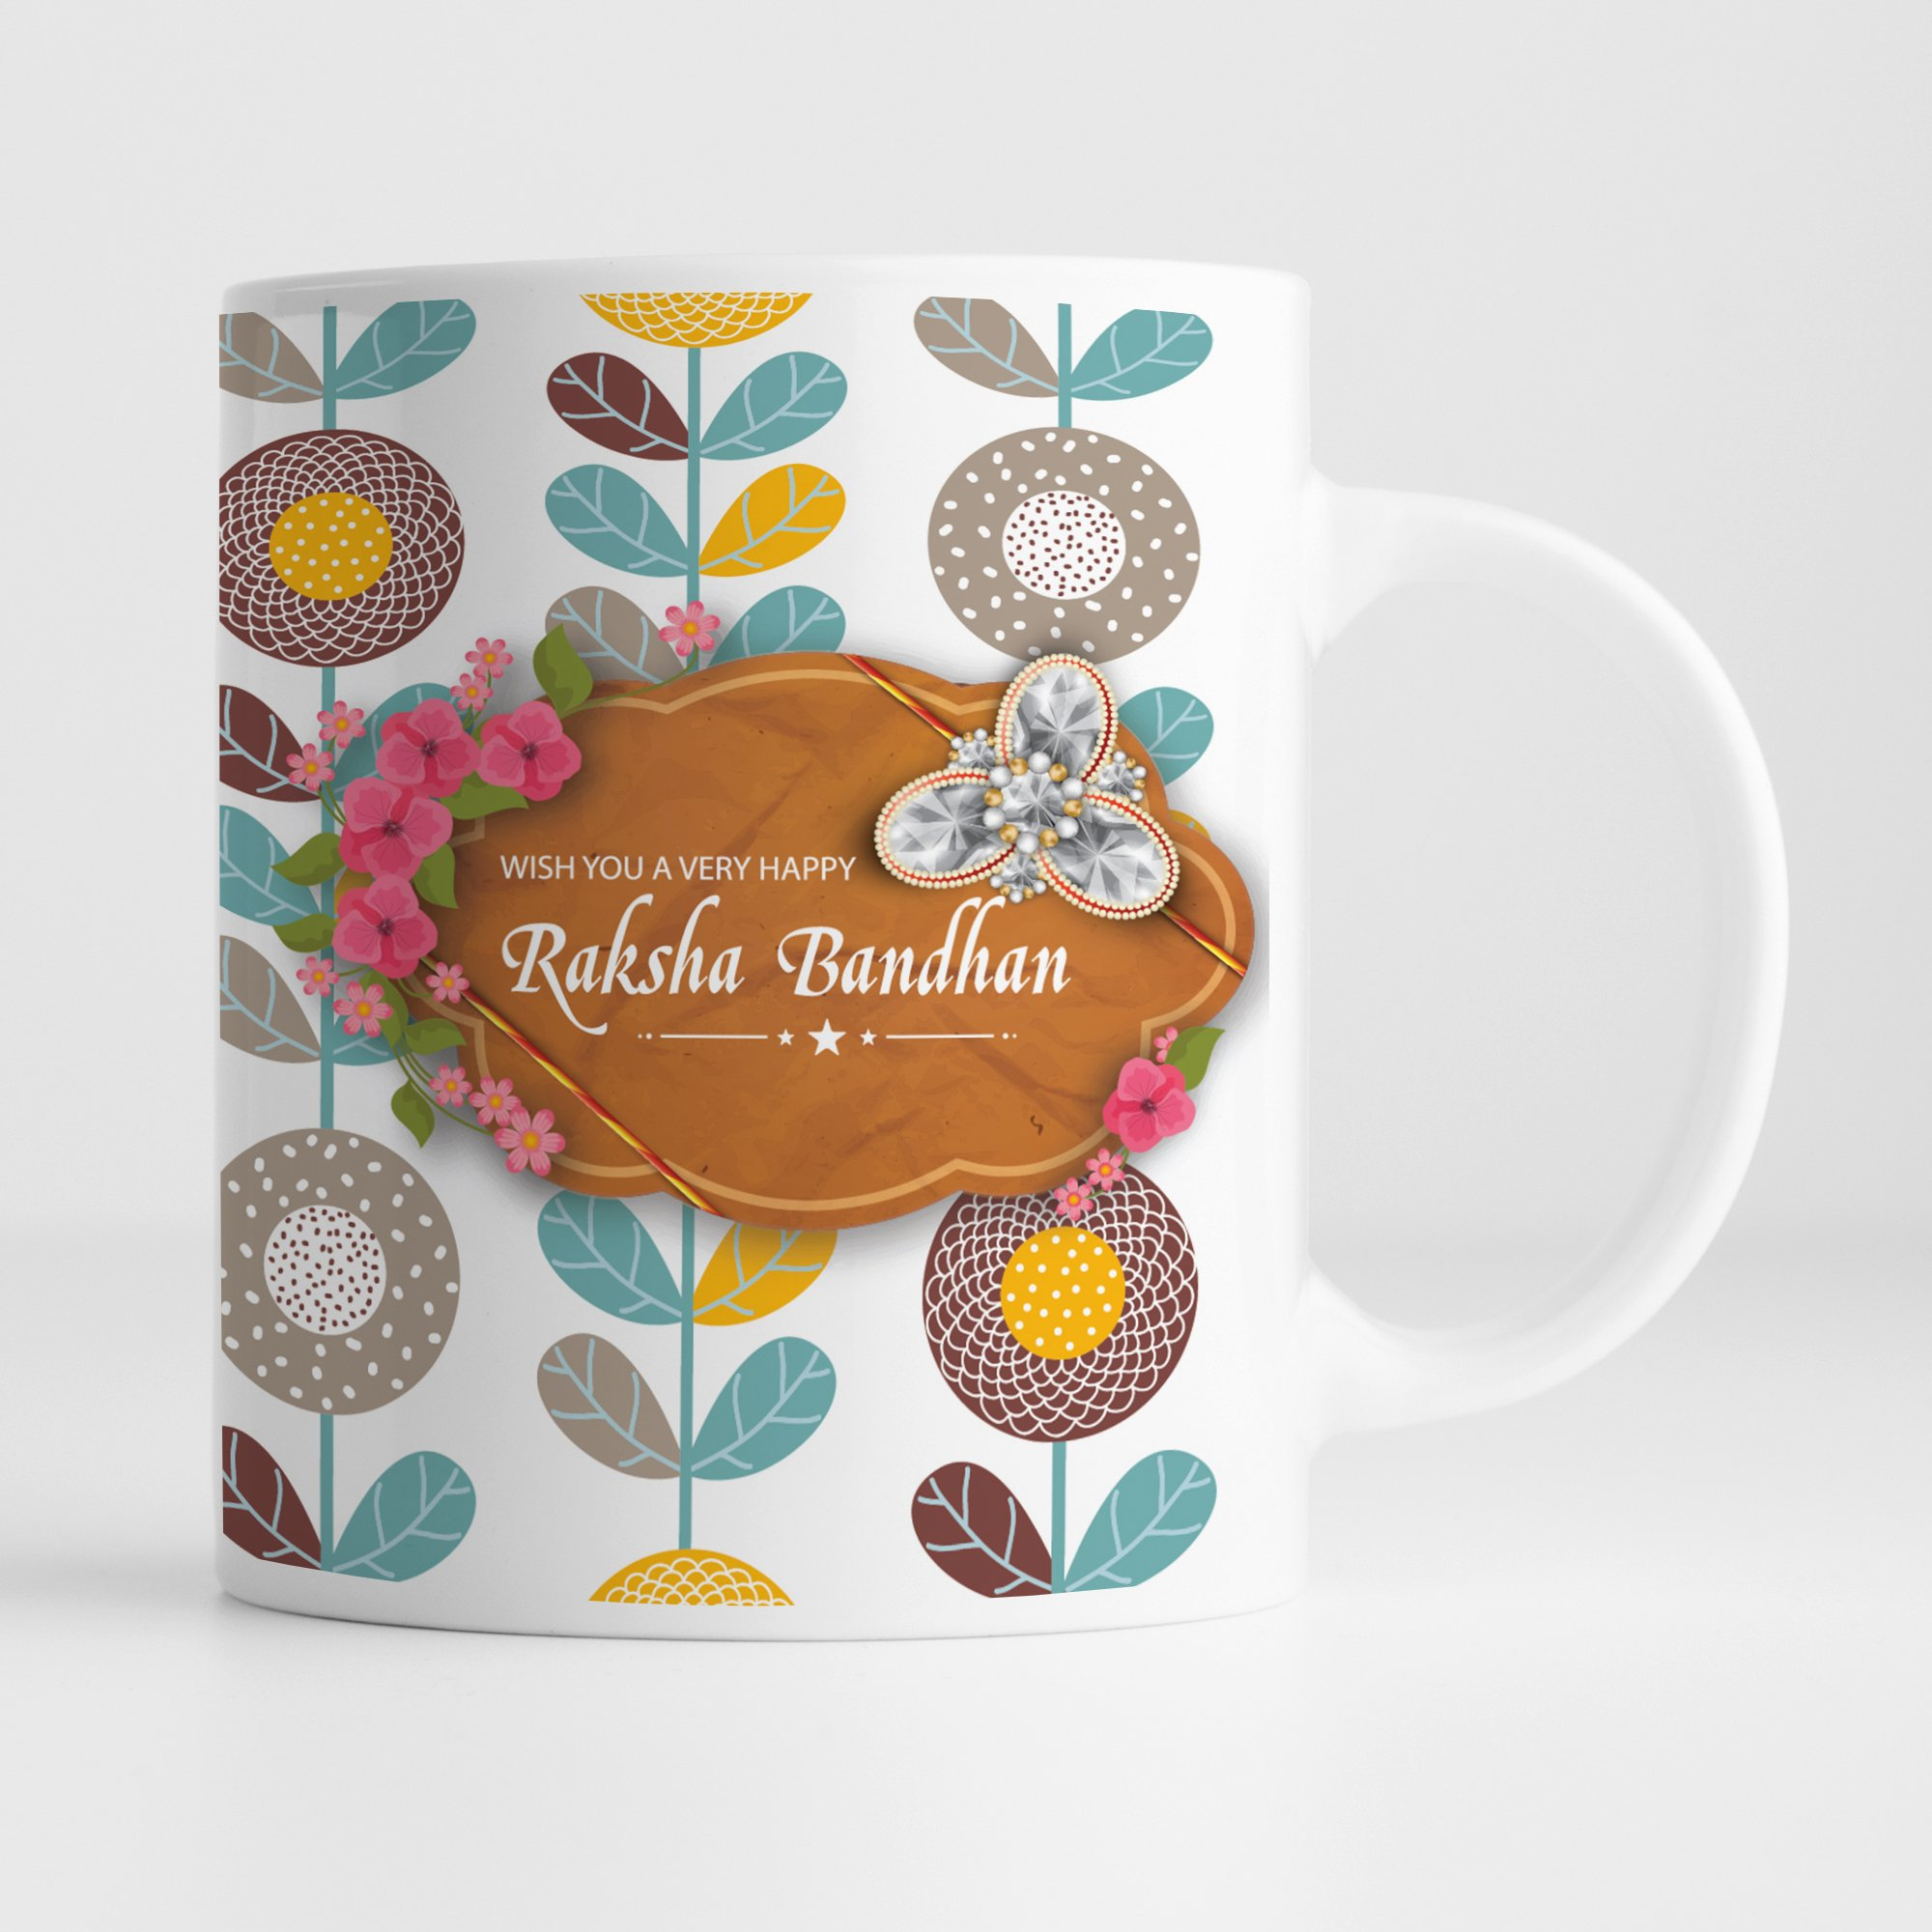 Ceramic Mug |Happy Raksha Bandhan | Rakshabandhan Gift For Brother |Rakhi Gift For Sister |Gift For Rakhi Superior Quality Ceramic Mug